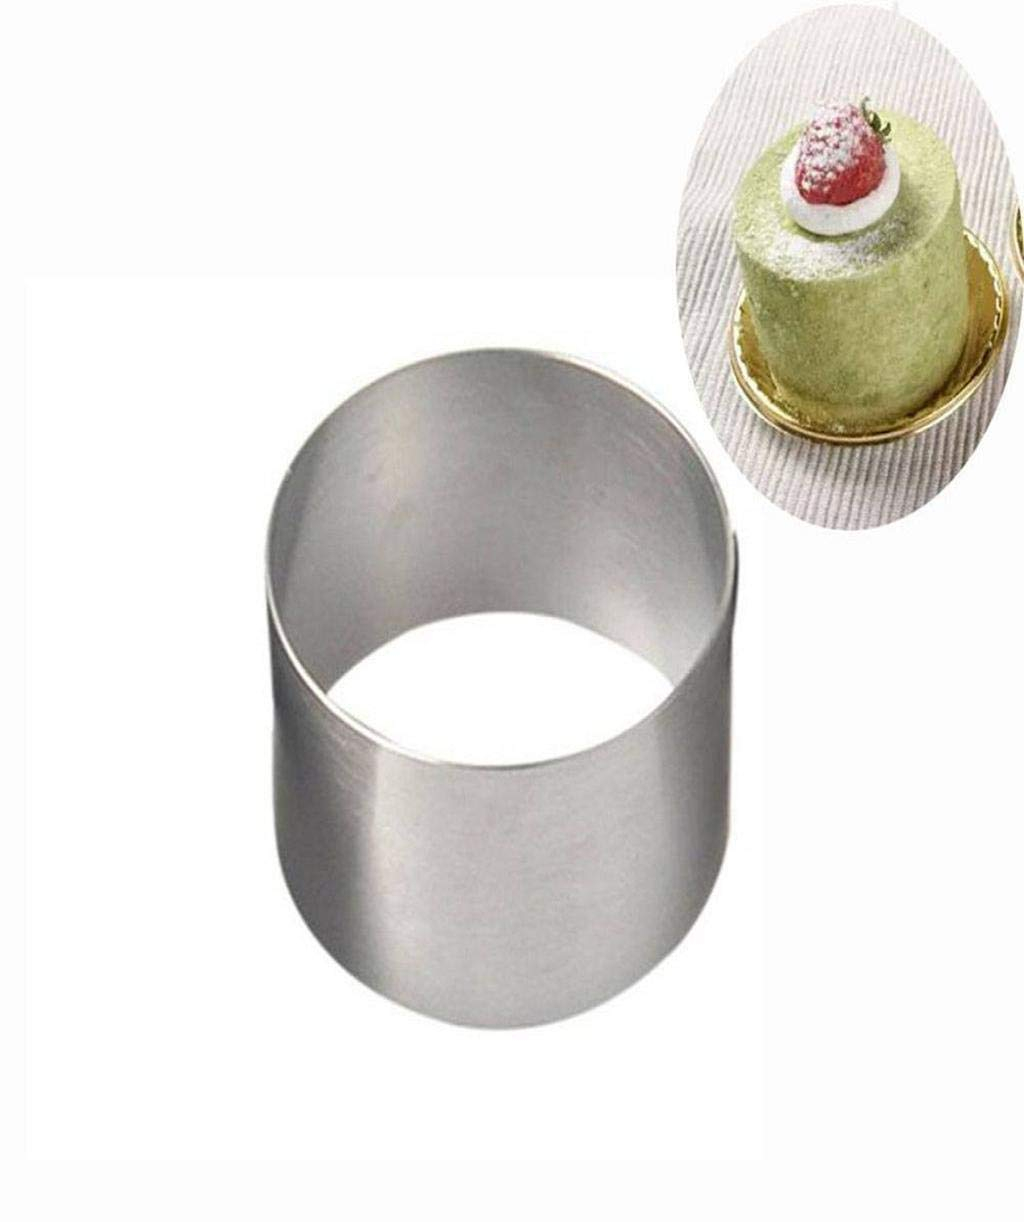 Barlingrock 1 Pc Mini Round Mousse Cake Food Grade Stainless Steel Pastry Ring for Baking Wedding Birthday Christmas Cake Baking